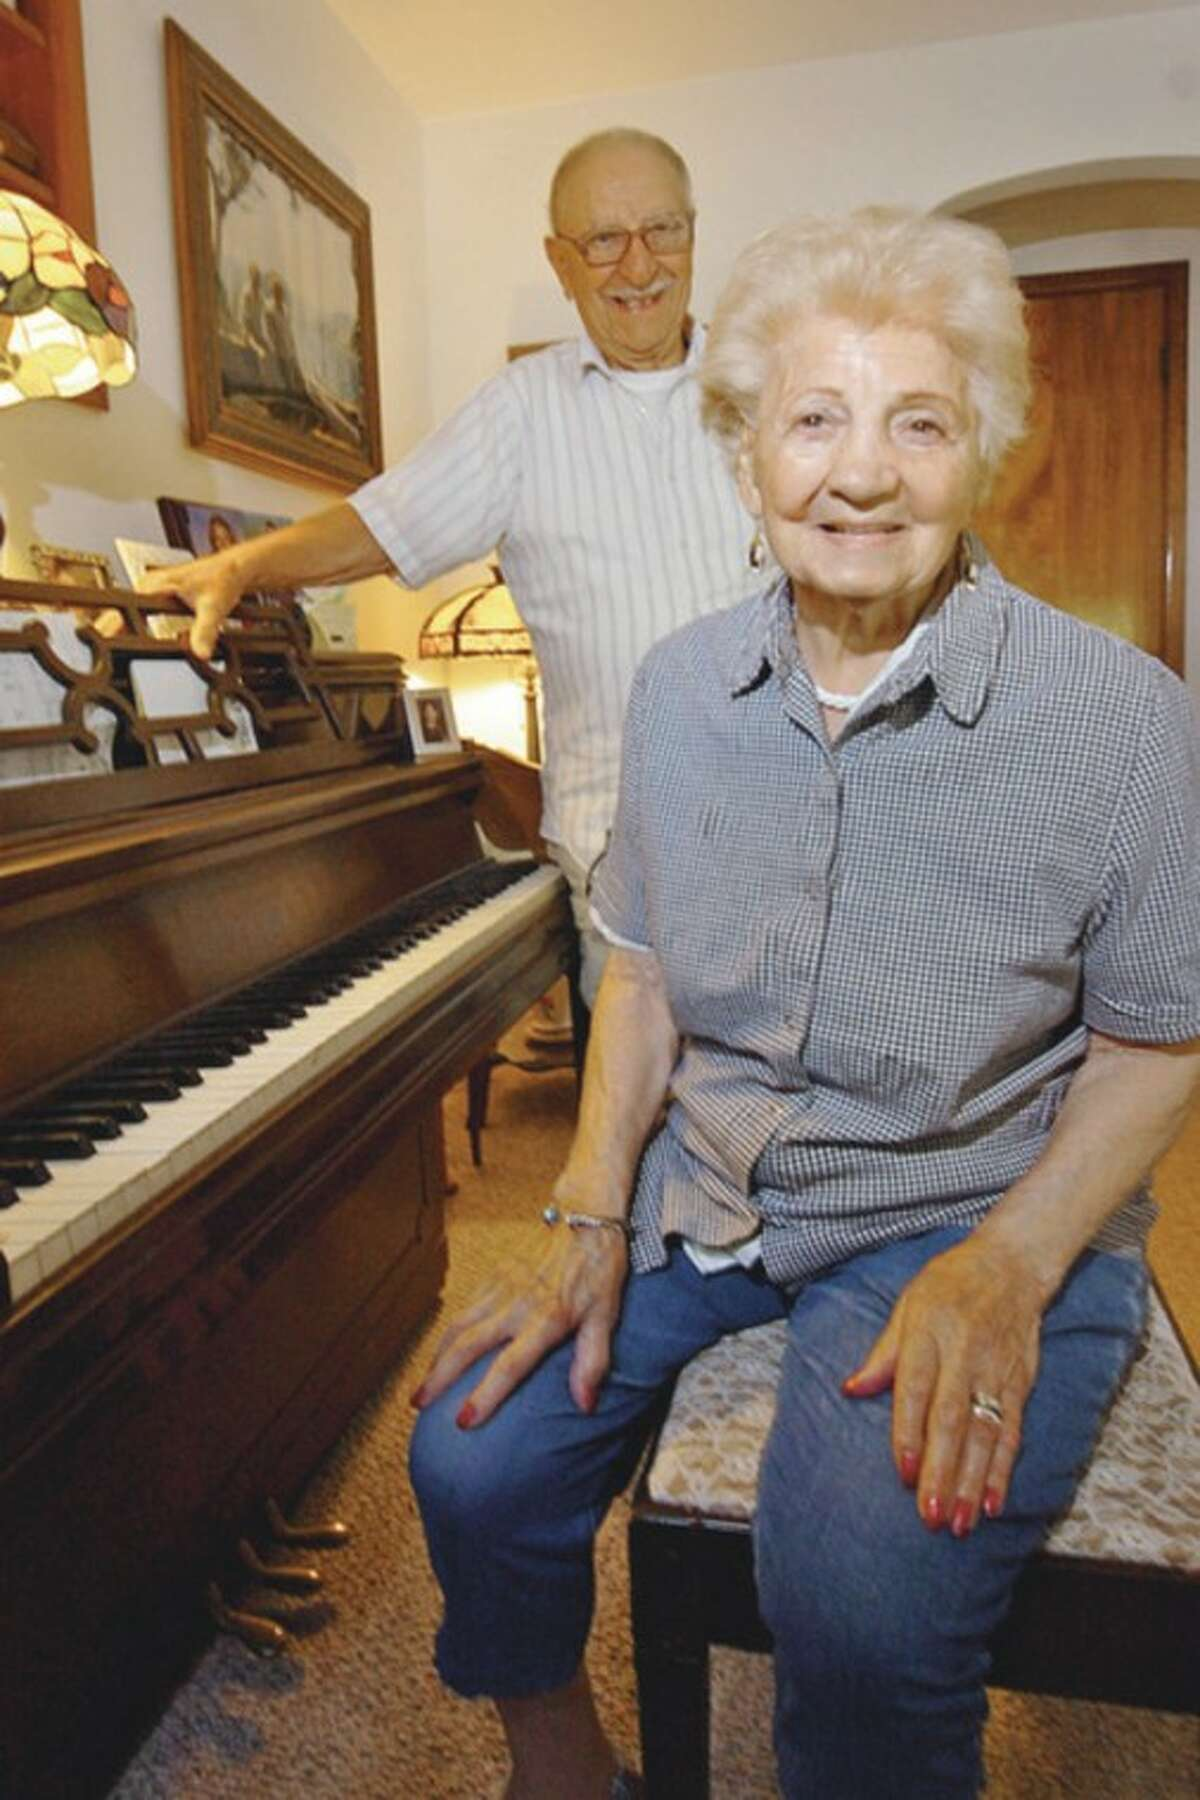 Hour photo / Erik Trautmann Frederica Genatiempo celebrated her 100th birthday Wednesday and will have her party Saturday at the South Norwalk Boat Club.